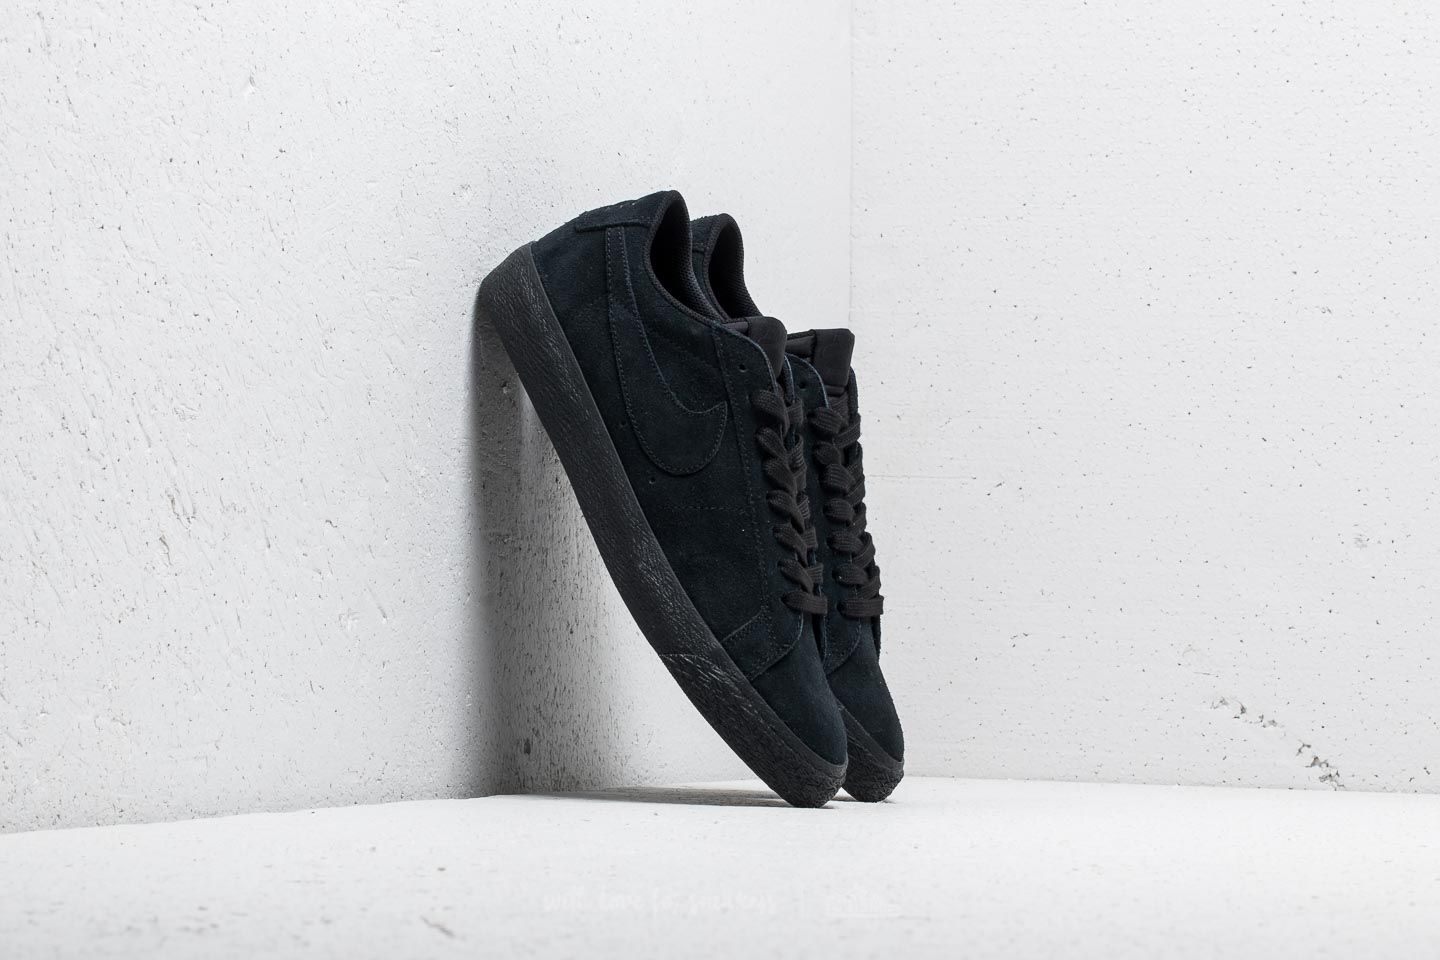 factory price cbeef 50a6a Nike SB Zoom Blazer Low Black/ Black-Gunsmoke | Footshop